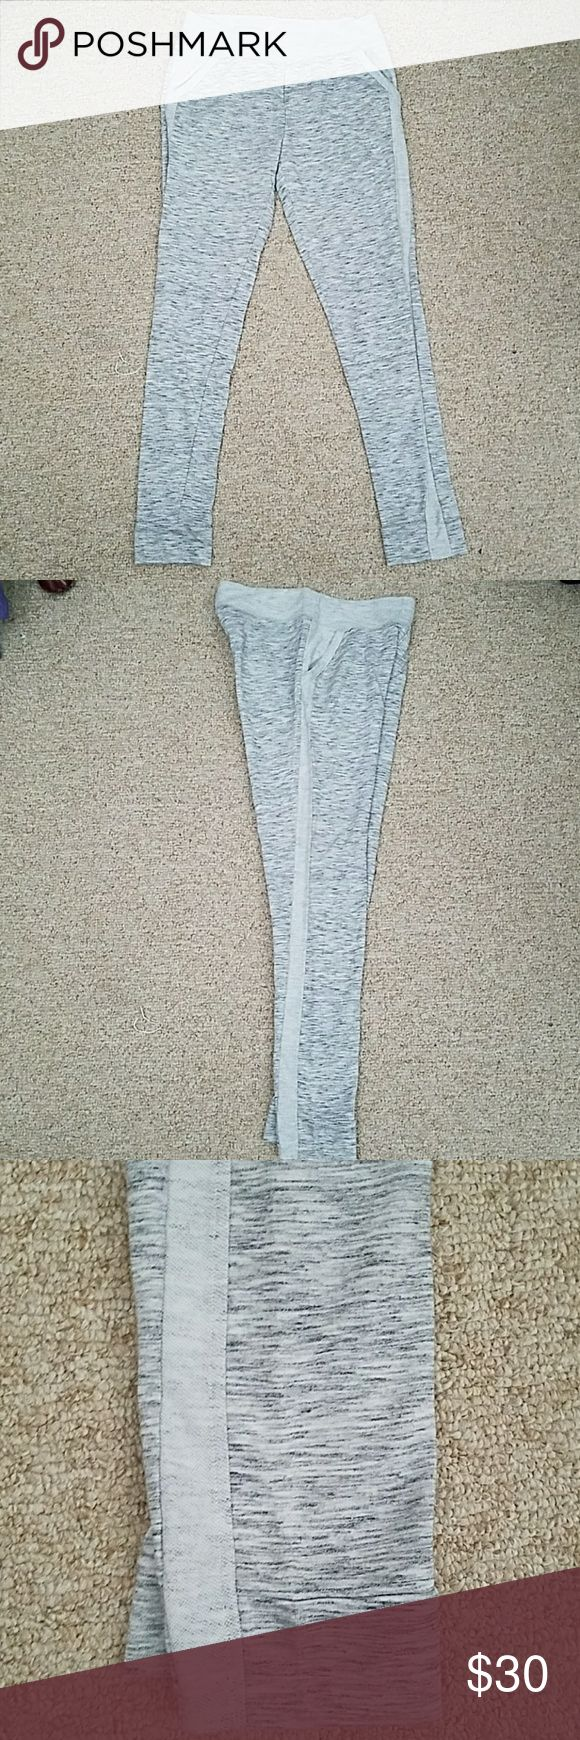 """NWOT Skinny jogger pants from NY&CO New never worn or washed. Light marled grey skinny jogger pants with light grey pinstripe on side. Pockets, thick waist band. Mid rise. Has stretch. These are a size M Regular length. 29"""" inseam. Open to offers :) New York & Company Pants Track Pants & Joggers"""